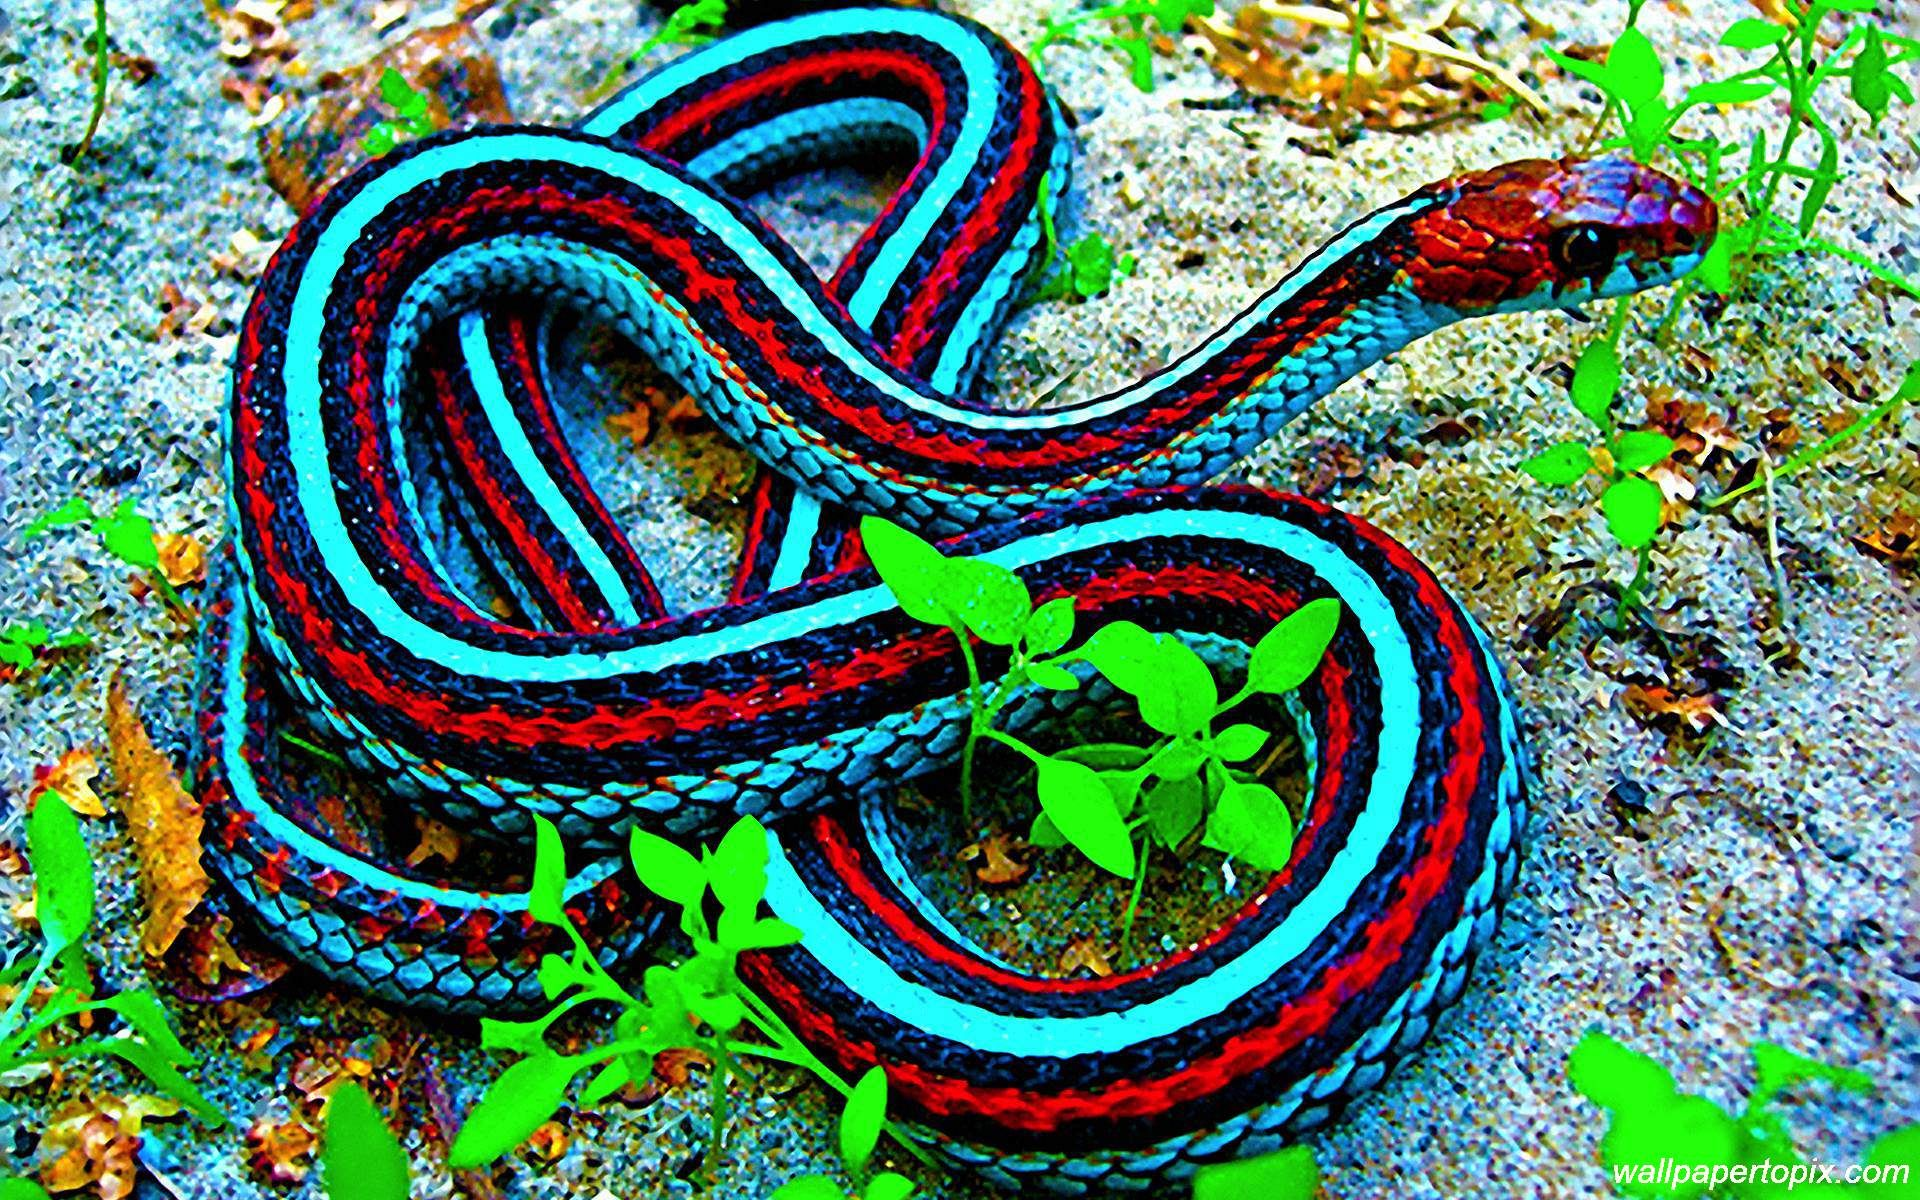 King Cobra Snakes Images